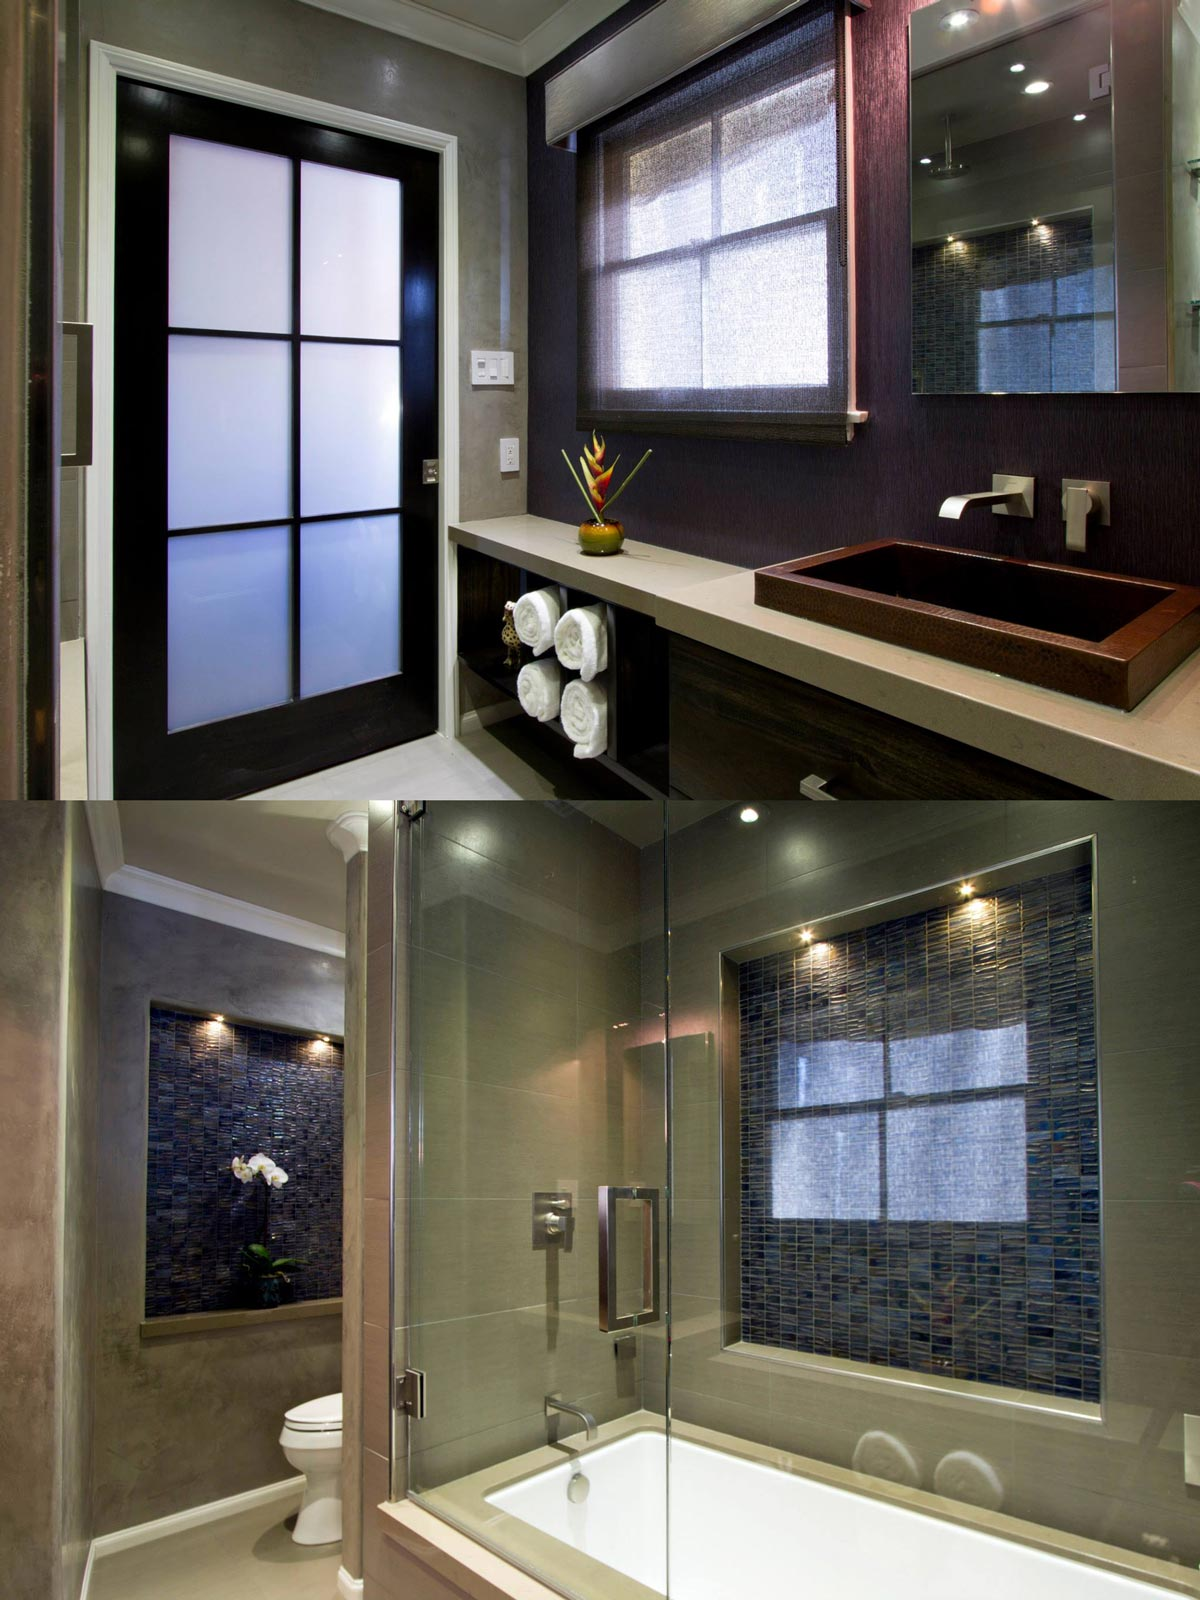 Custom Designed Bathroom Remodel - Plumbing Upgrades and Custom Cabinetry